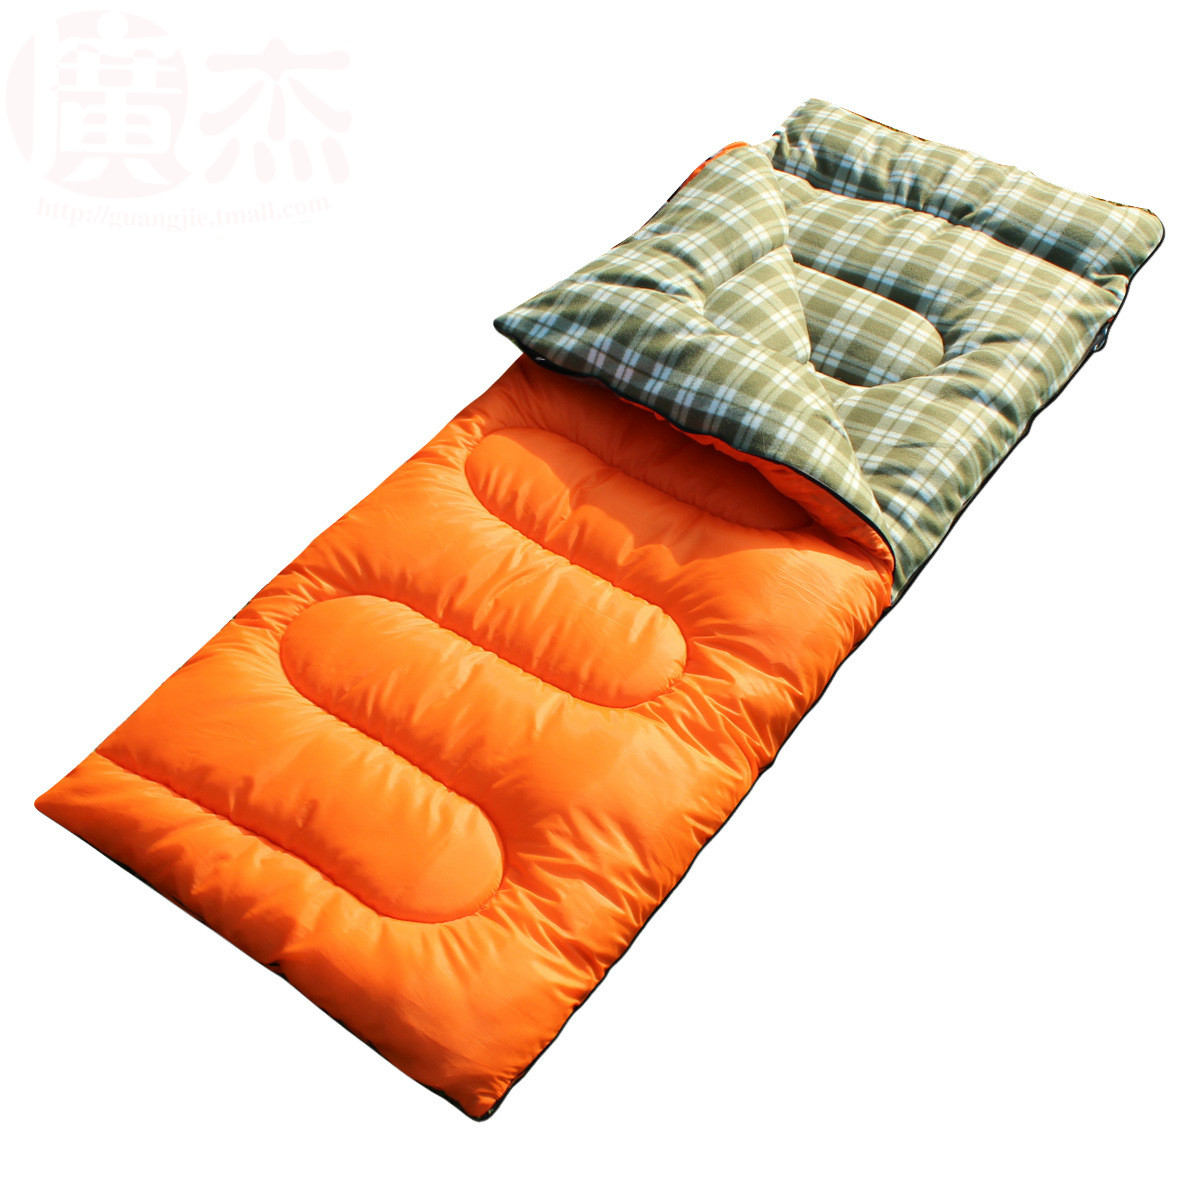 Outdoor camping sleeping bag spring summer autumn three season envelope sleeping bag can be splicing adult sleeping bag стоимость